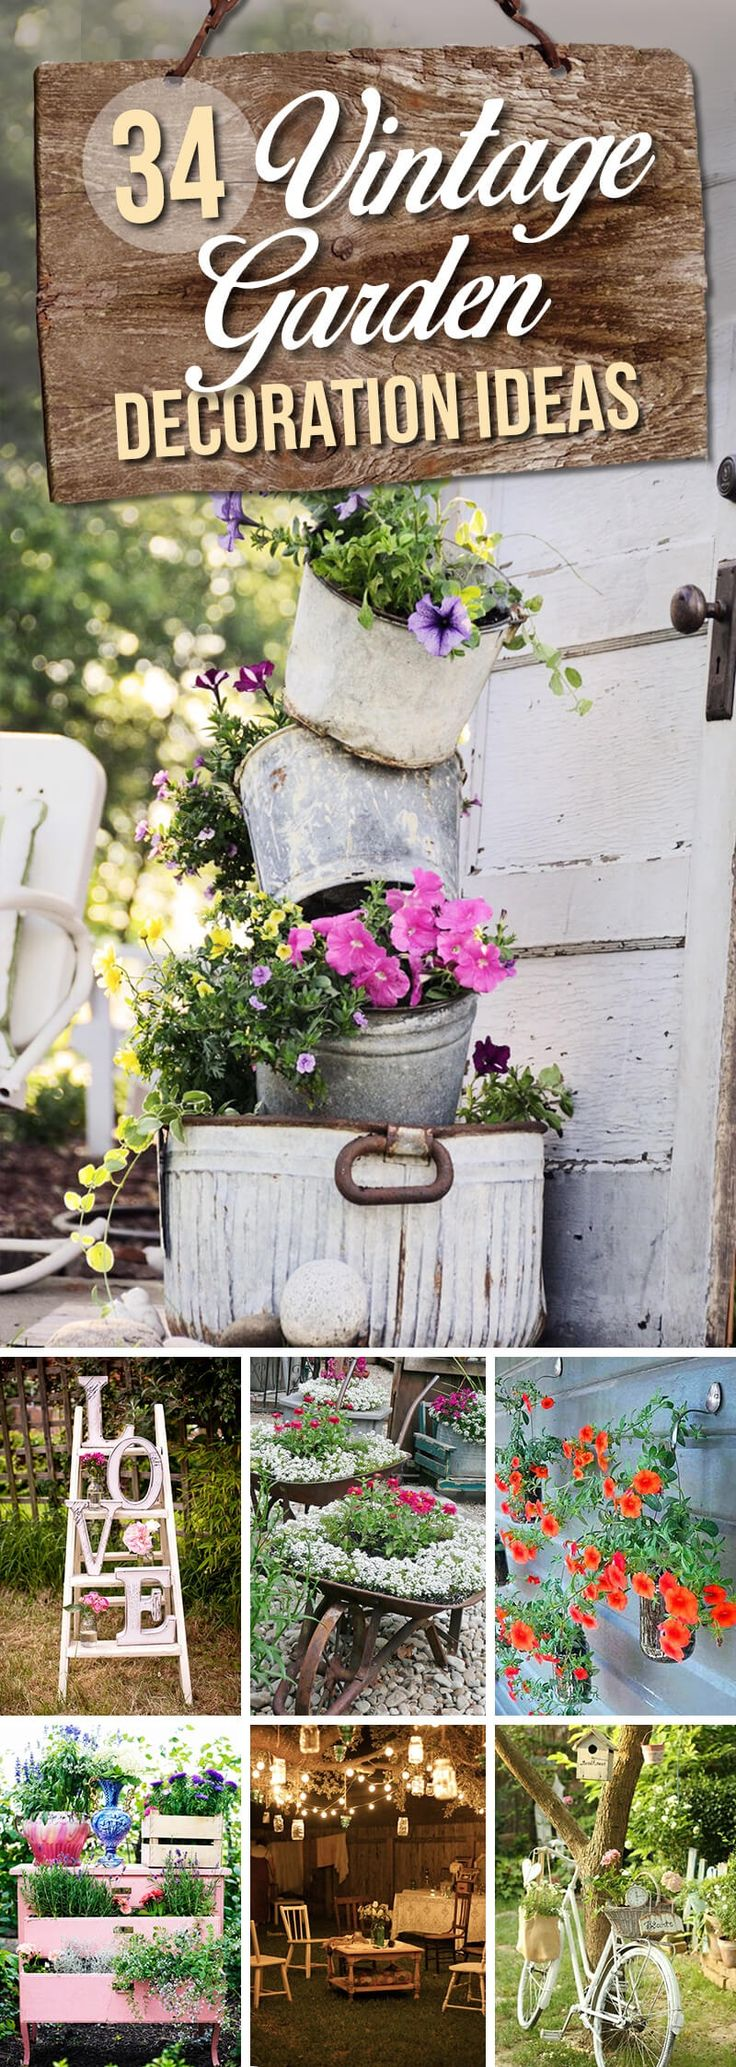 Vintage garden design is a growing trend for outdoor living spaces. Incorporating fun antique pieces from inside the house into your yard gives it a unique look no one else on the block will have. This list of 34 pretty vintage garden decor ideas has everything you need to take your outdoor...